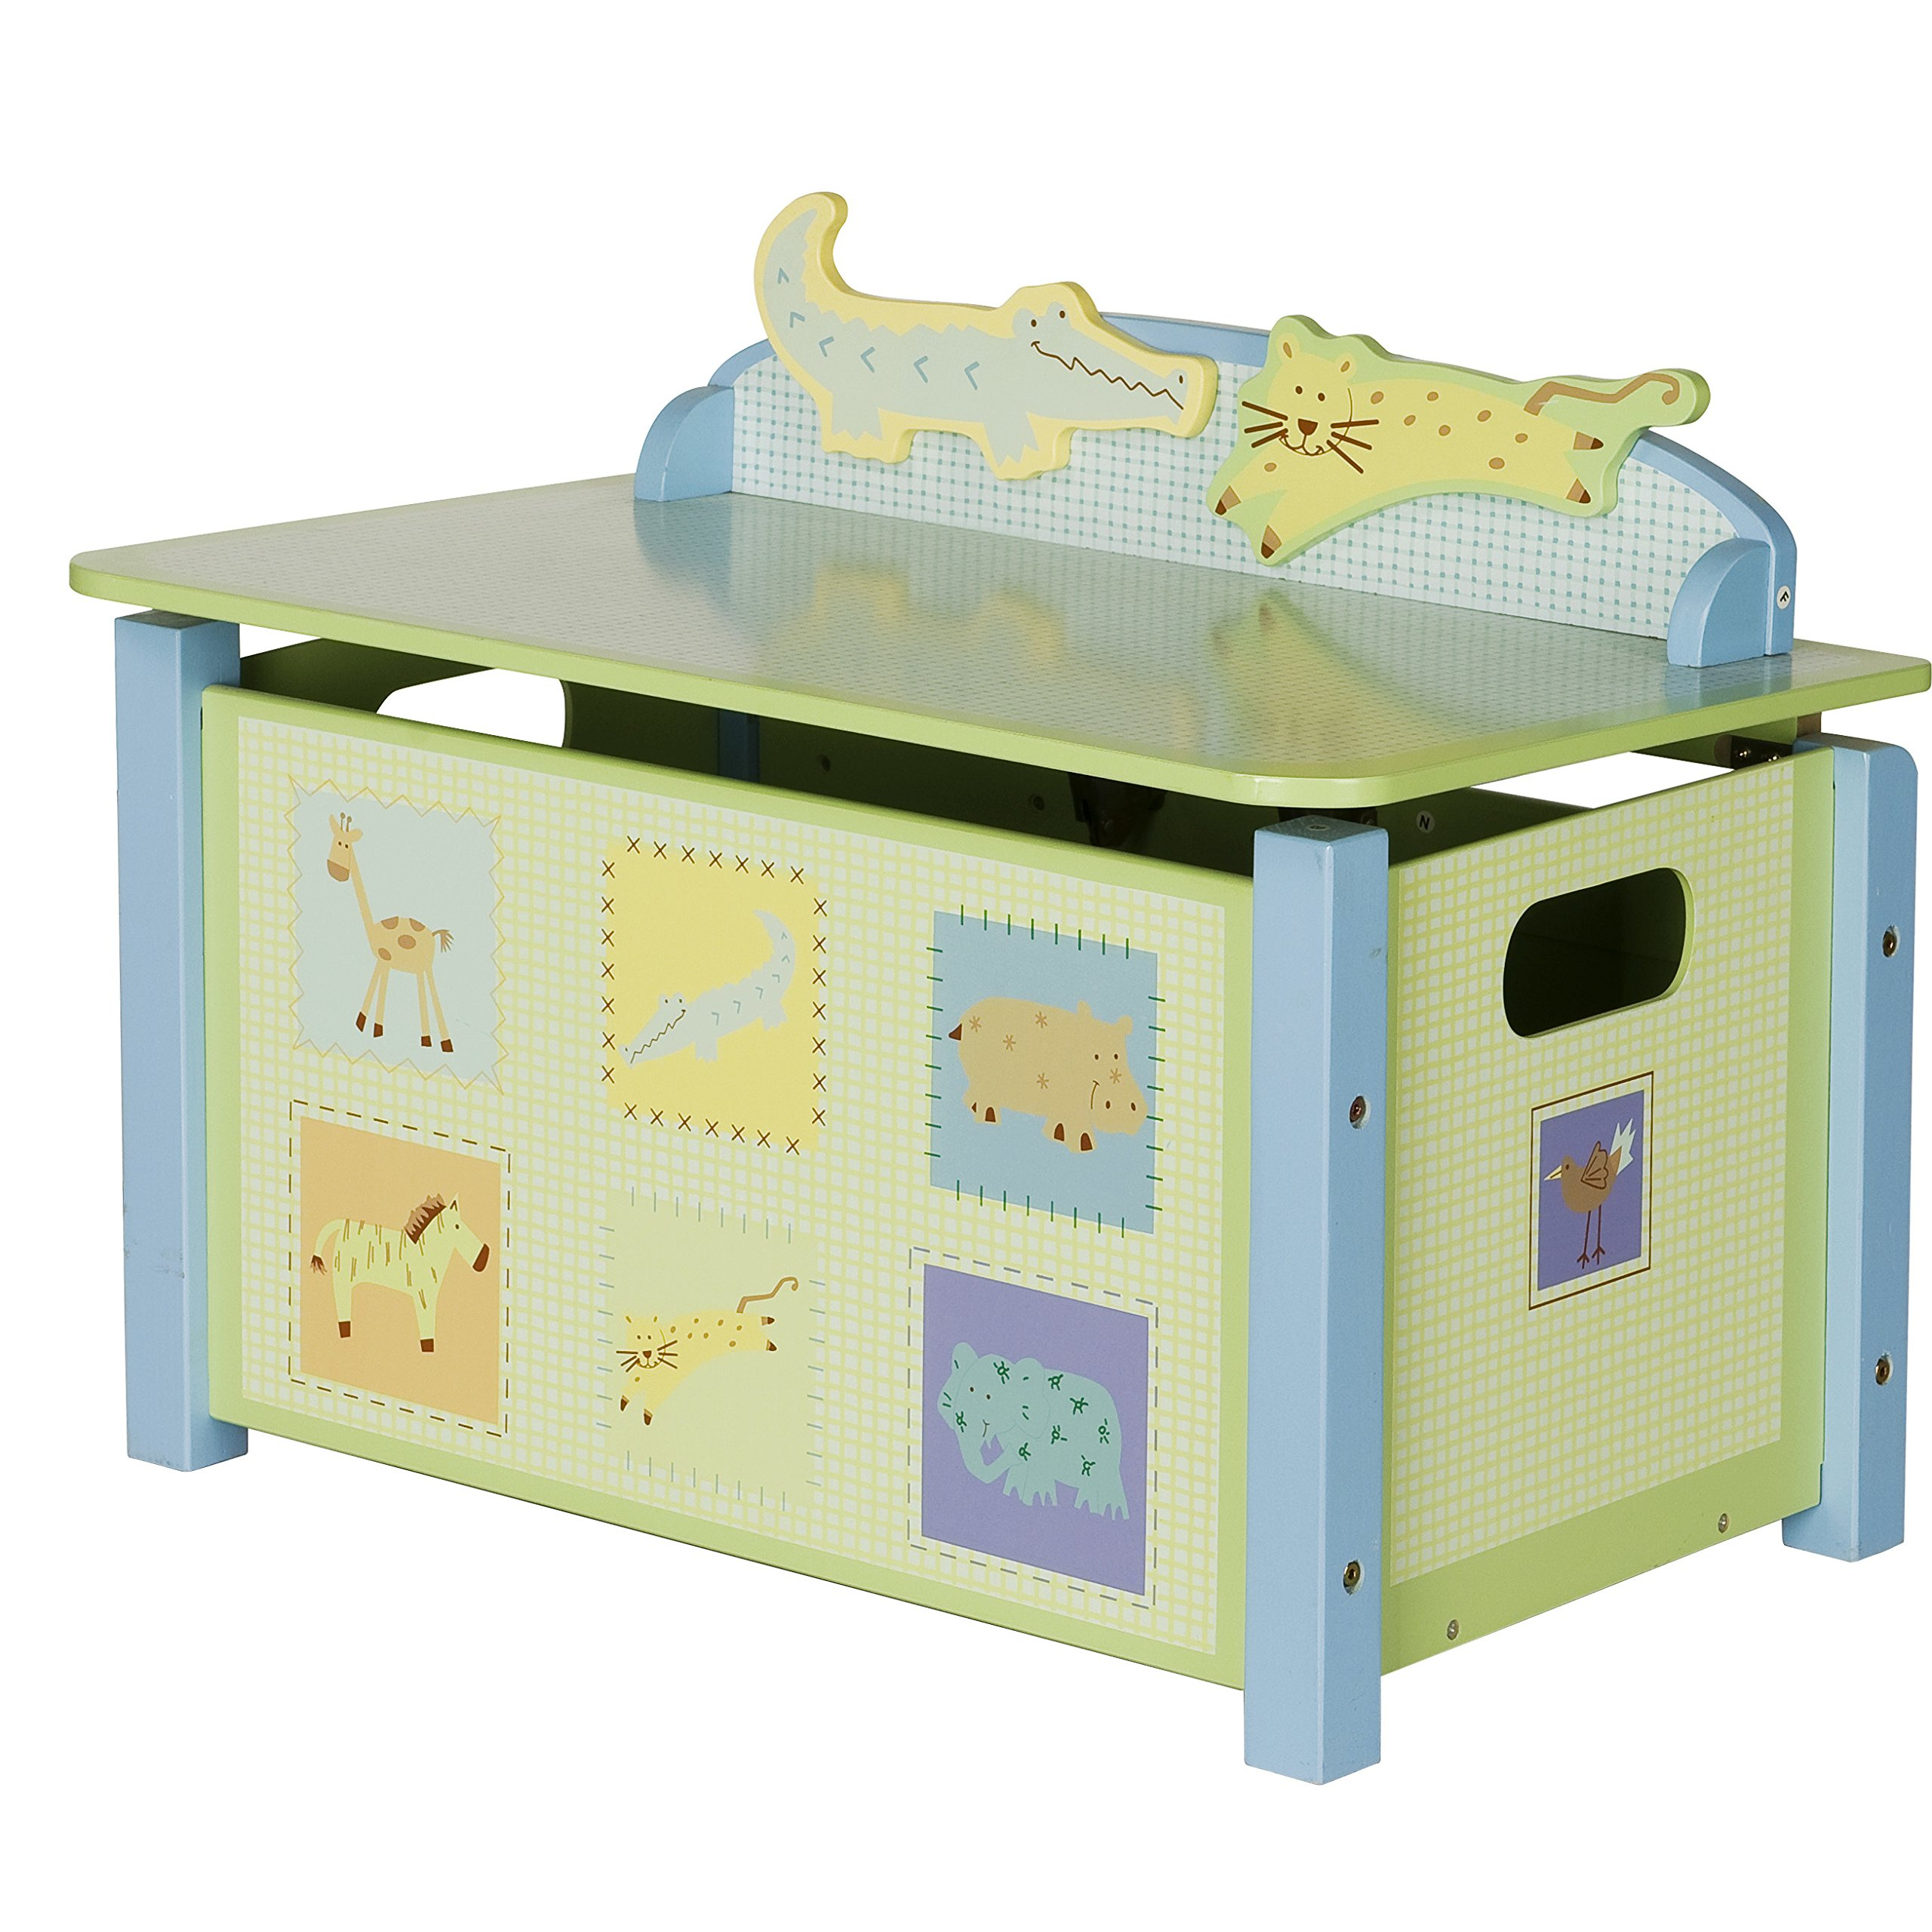 Child's Toy Box, Toy storage by OS Home & Office Furniture